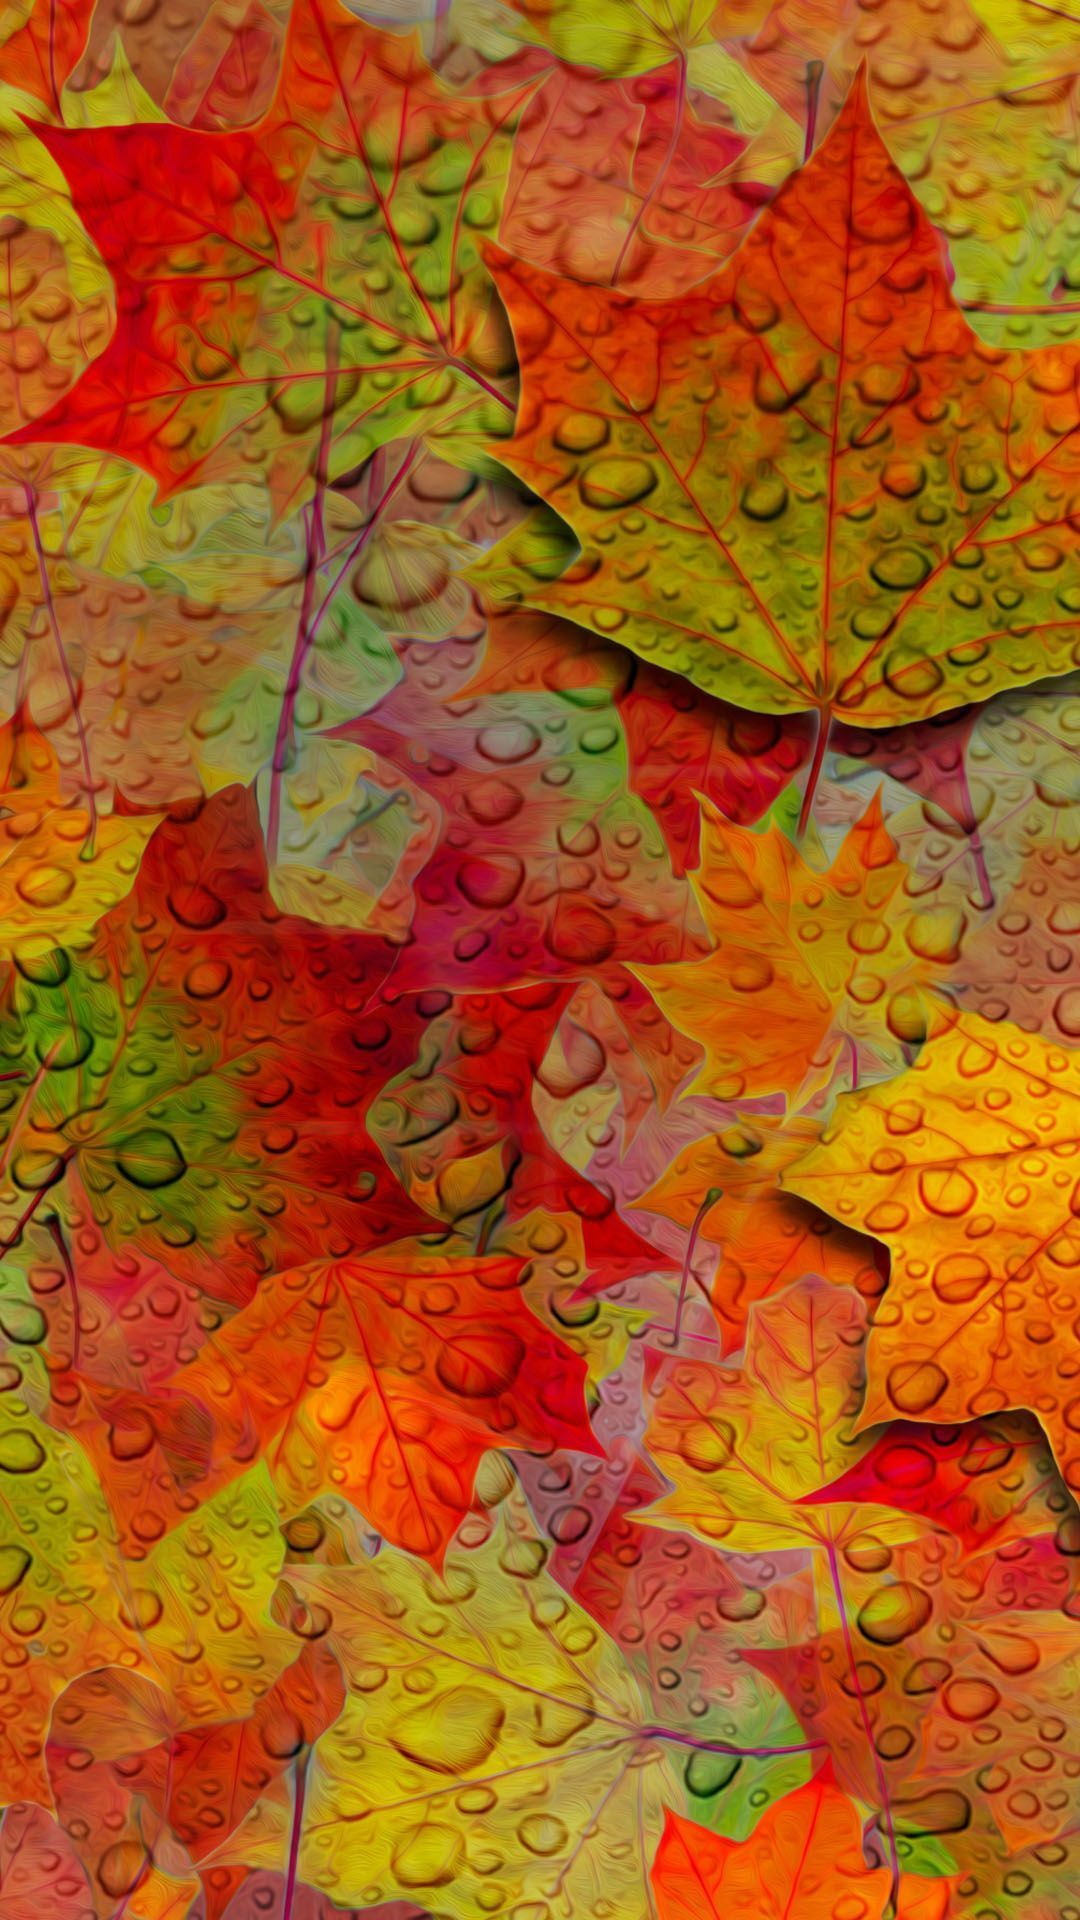 Fall Leaves Wallpaper For Android Fall Wallpaper Autumn Leaves Wallpaper Free Fall Wallpaper